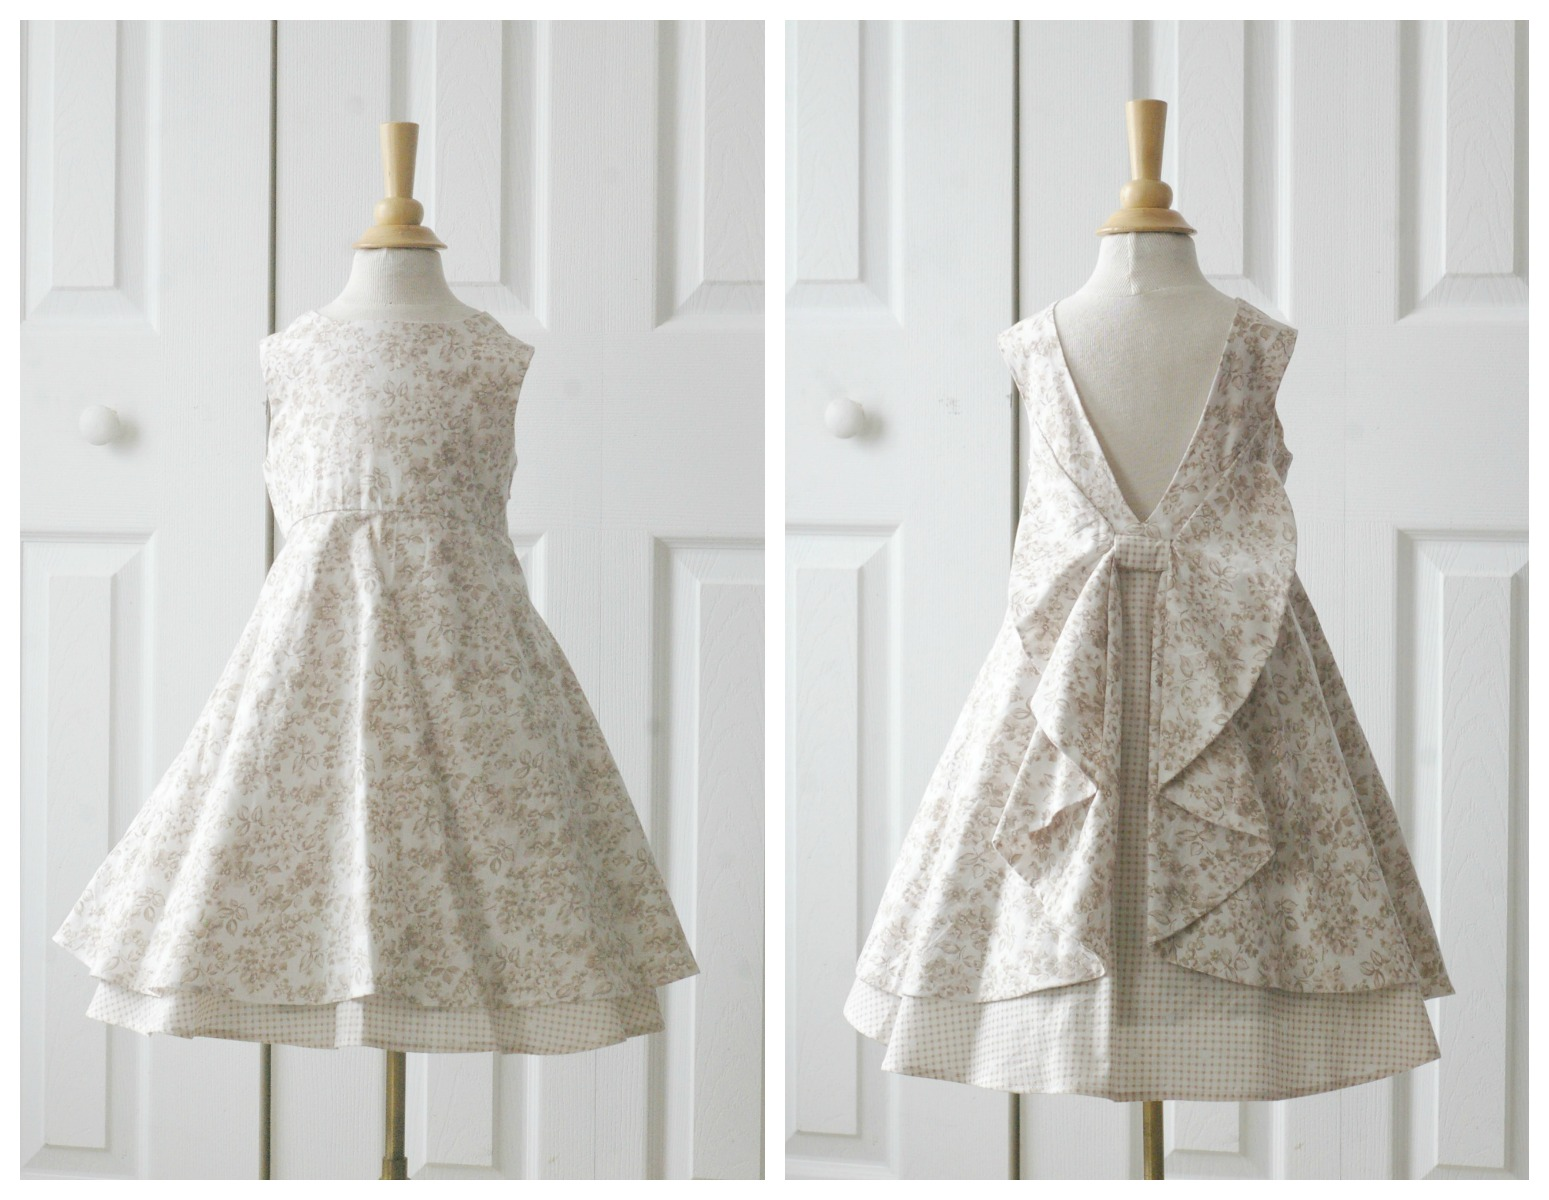 The dress garden - I Love The Simplicity Of The Front Of The Dress And Decided On Making A Version Without The Flounce And Added A Delicate Ribbon To The Waistline Seam